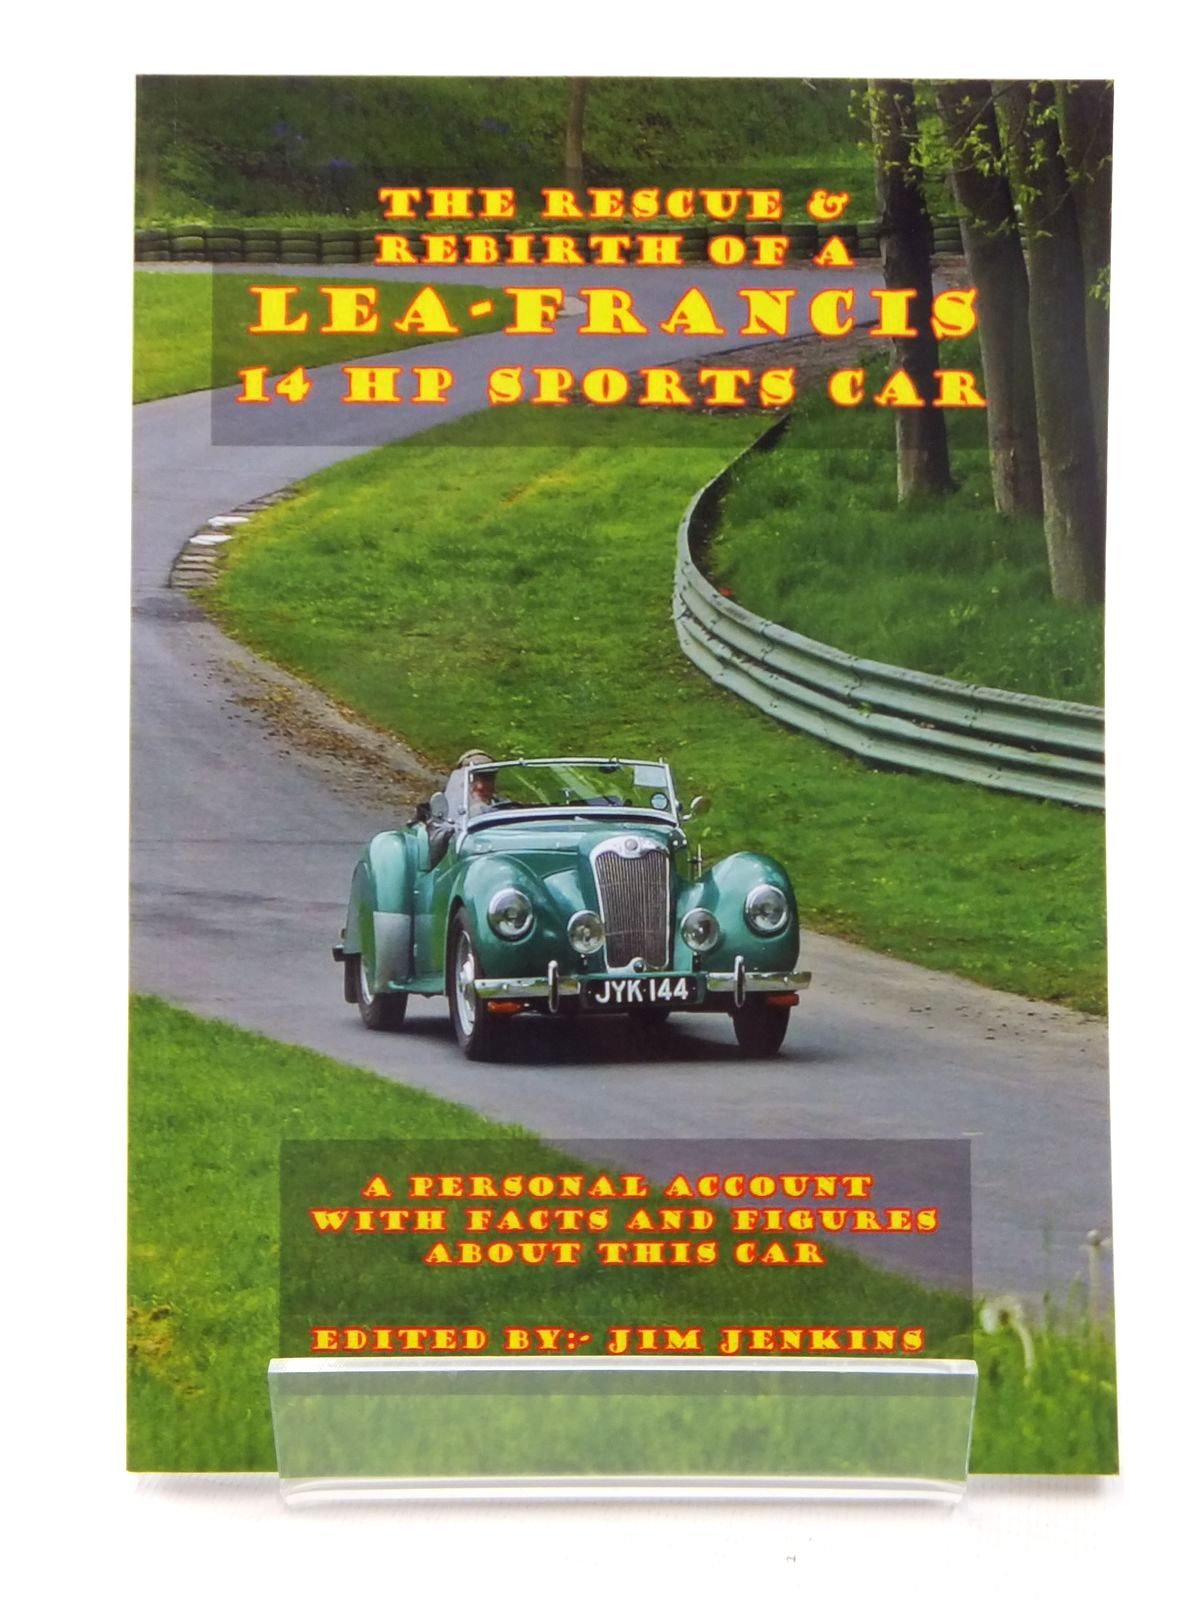 Photo of THE RESCUE & REBIRTH OF A LEA-FRANCIS 14 HP SPORTS CAR written by Jenkins, Jim published by Jim Jenkins (STOCK CODE: 1609683)  for sale by Stella & Rose's Books